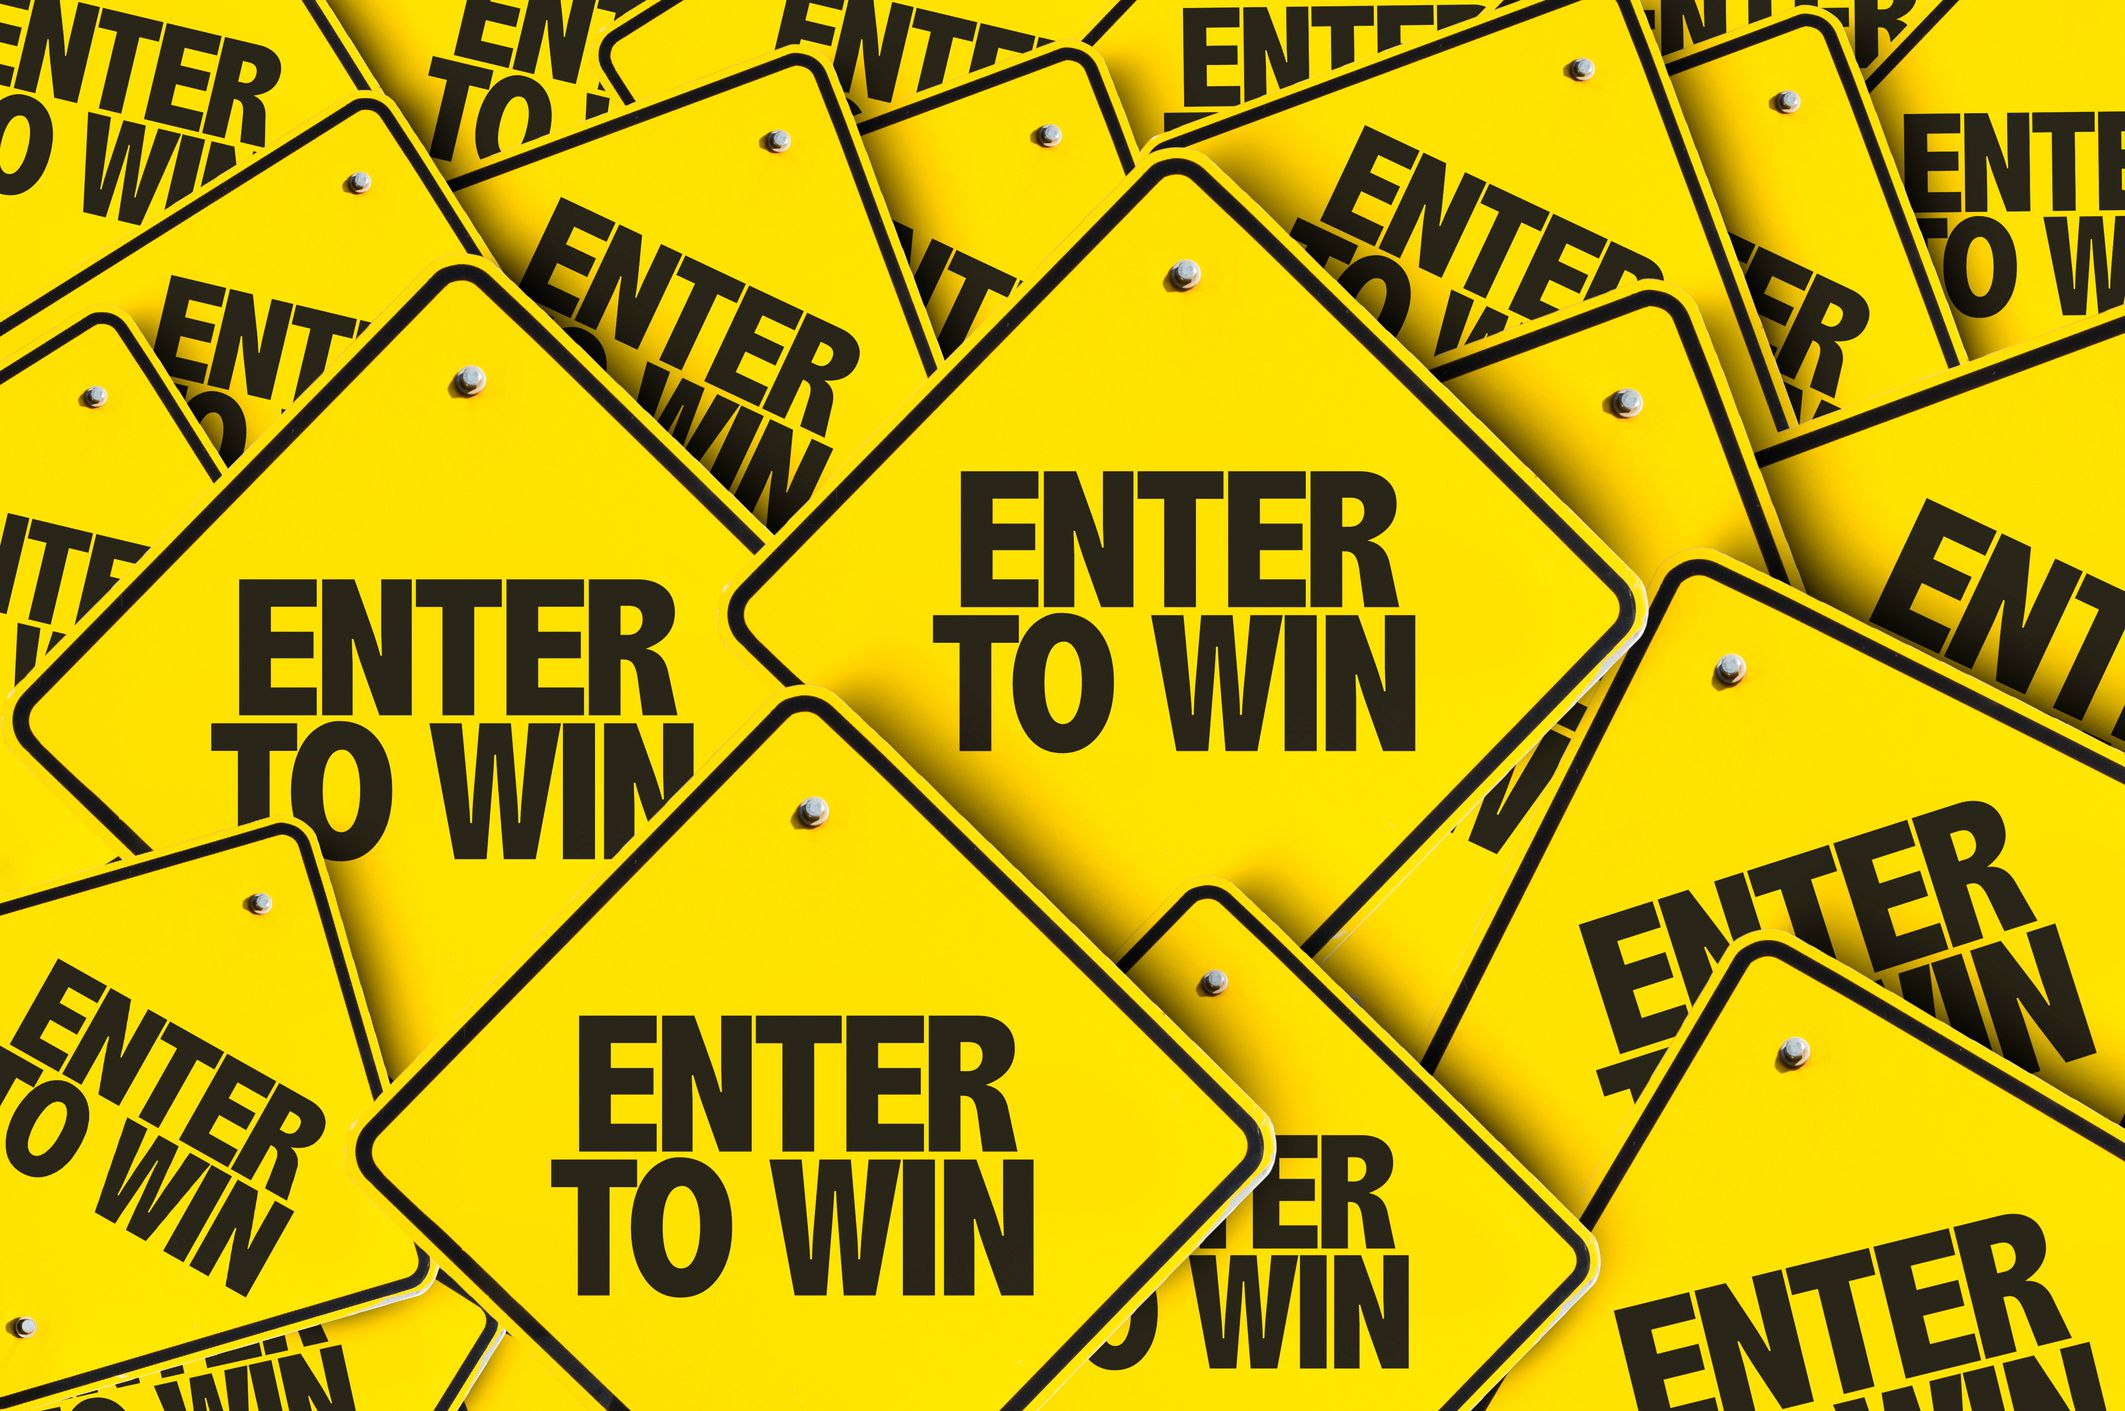 faster sweepstakes entry win prizes in half the time